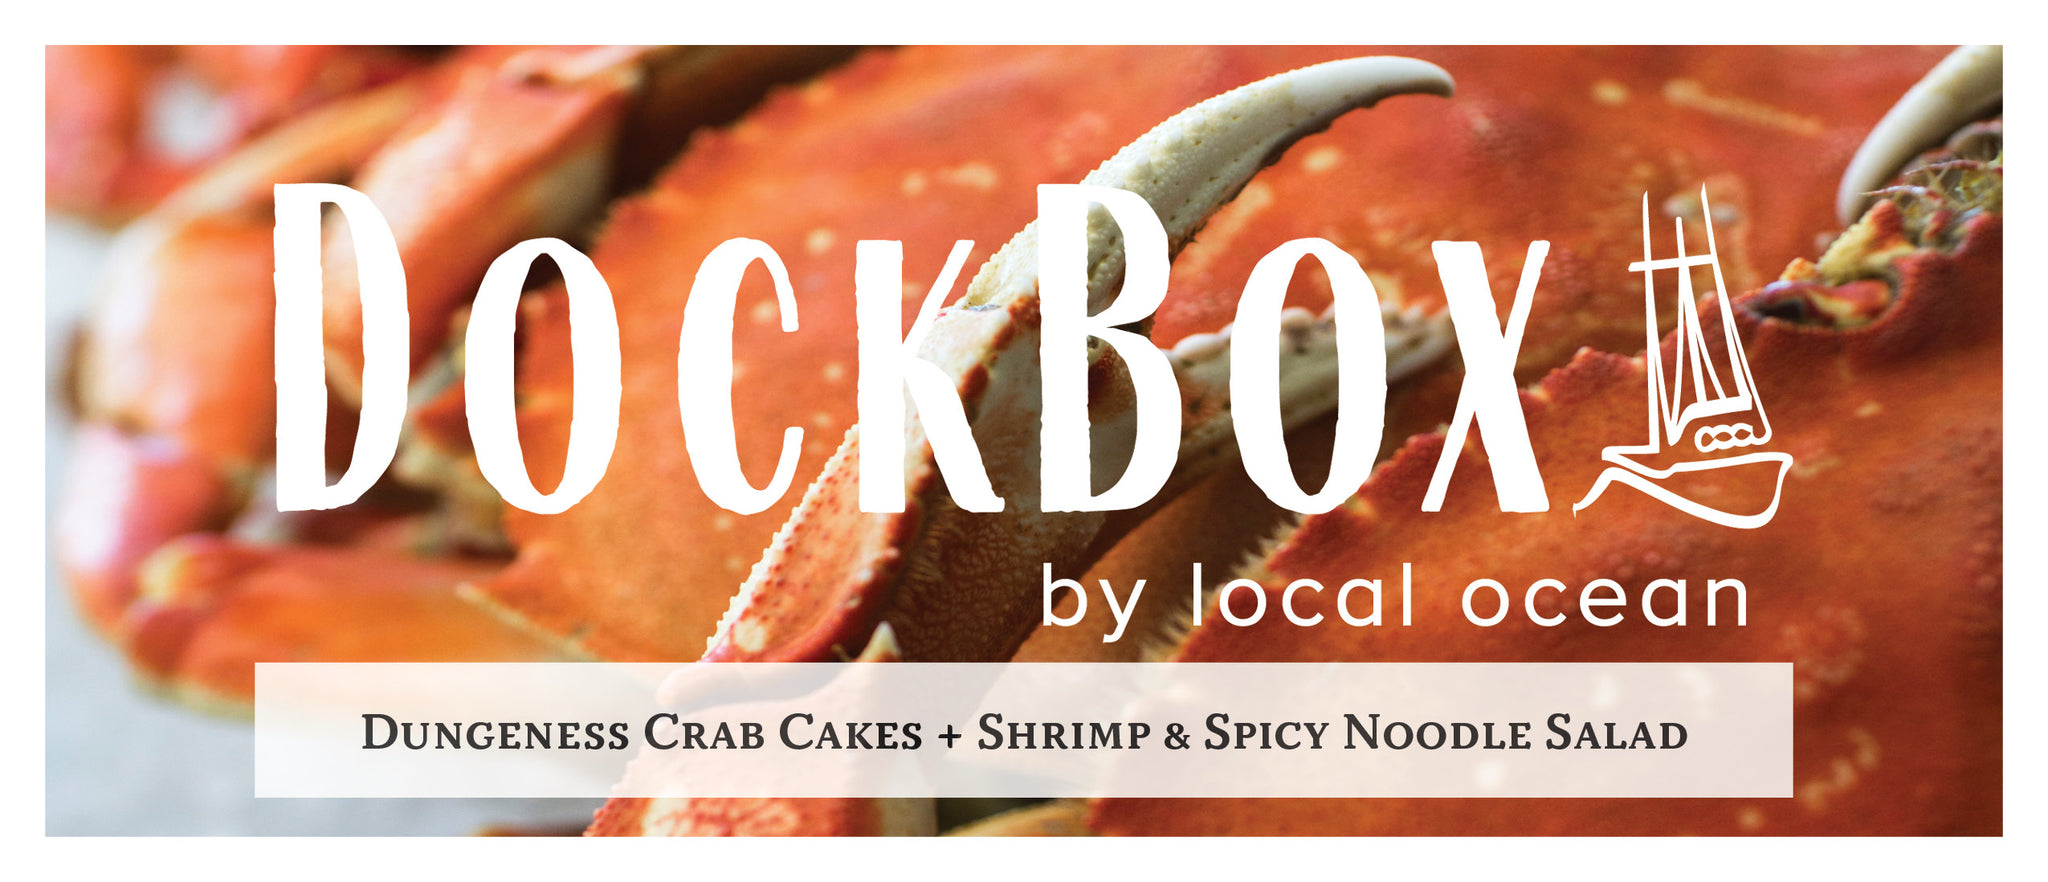 Box #6: Dungeness Crab Cakes + Shrimp & Spicy Noodle Salad